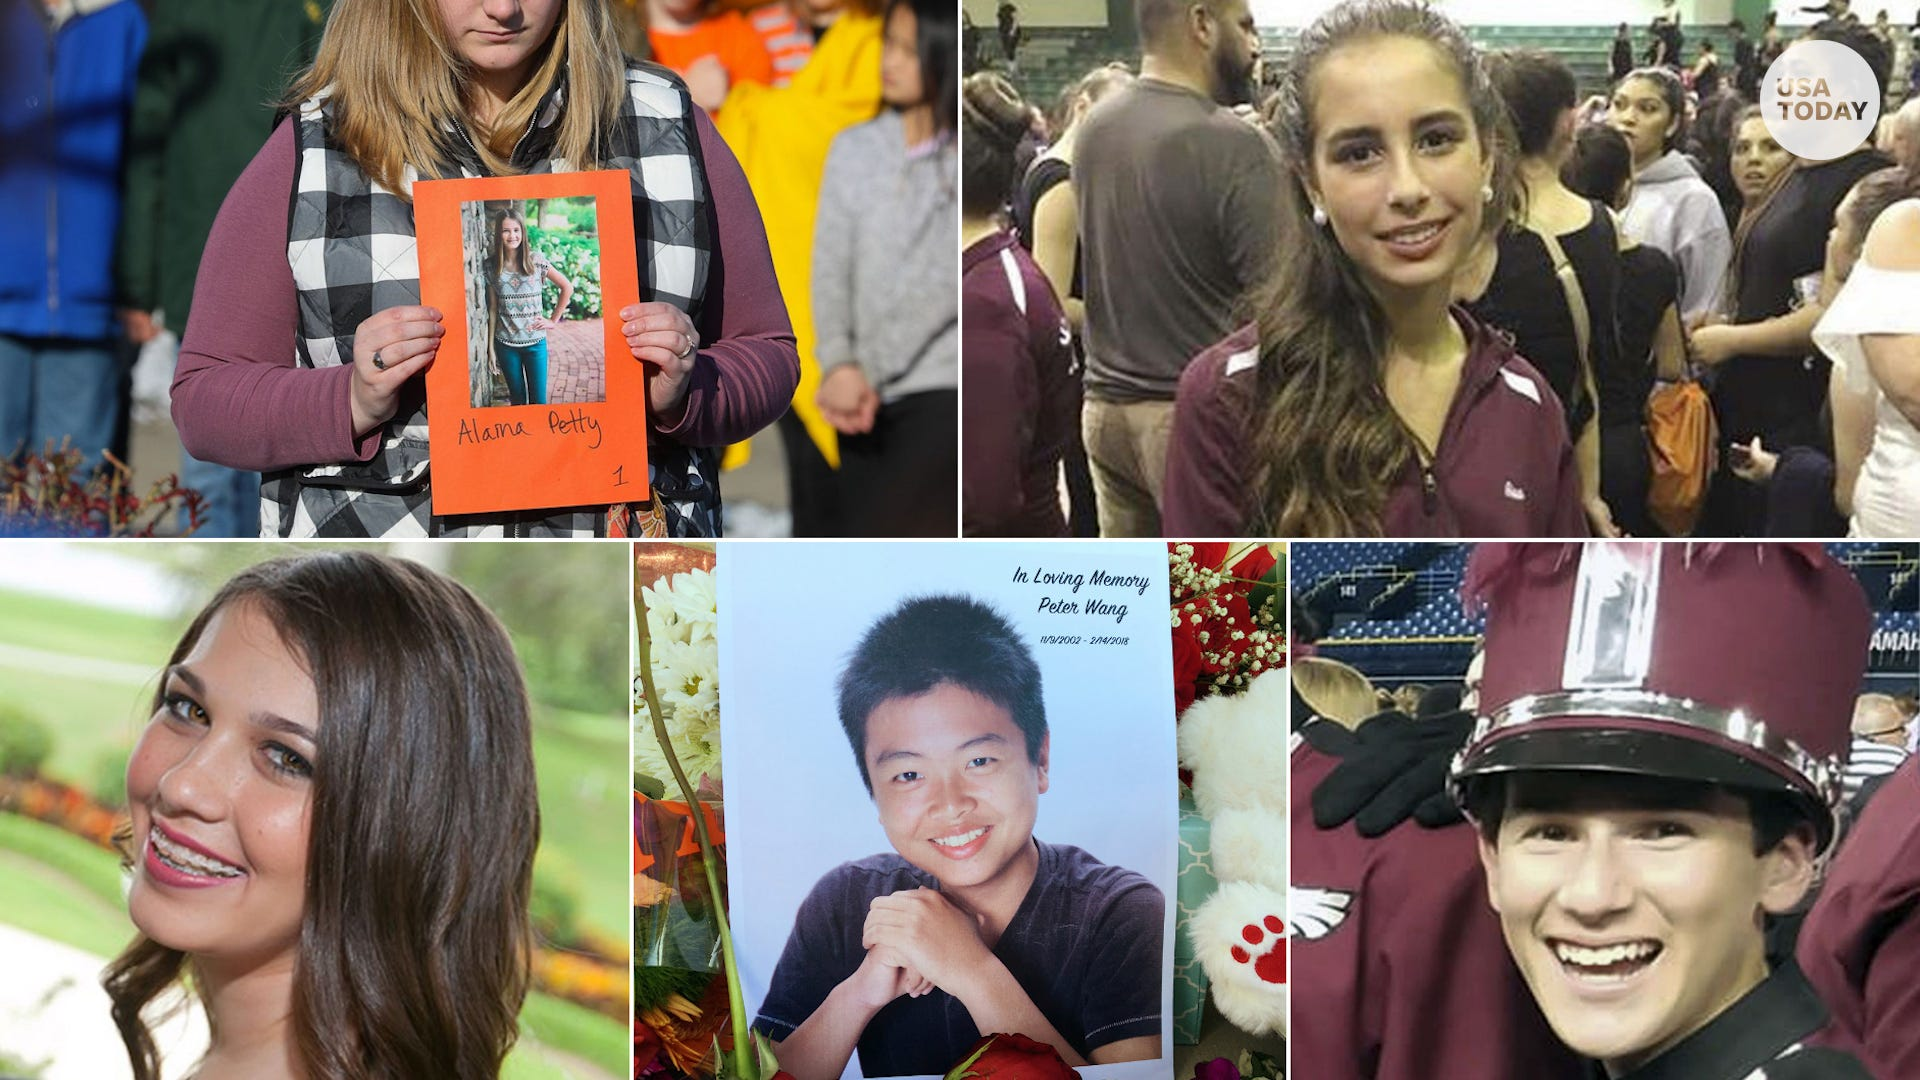 Remembering the Parkland school shooting victims